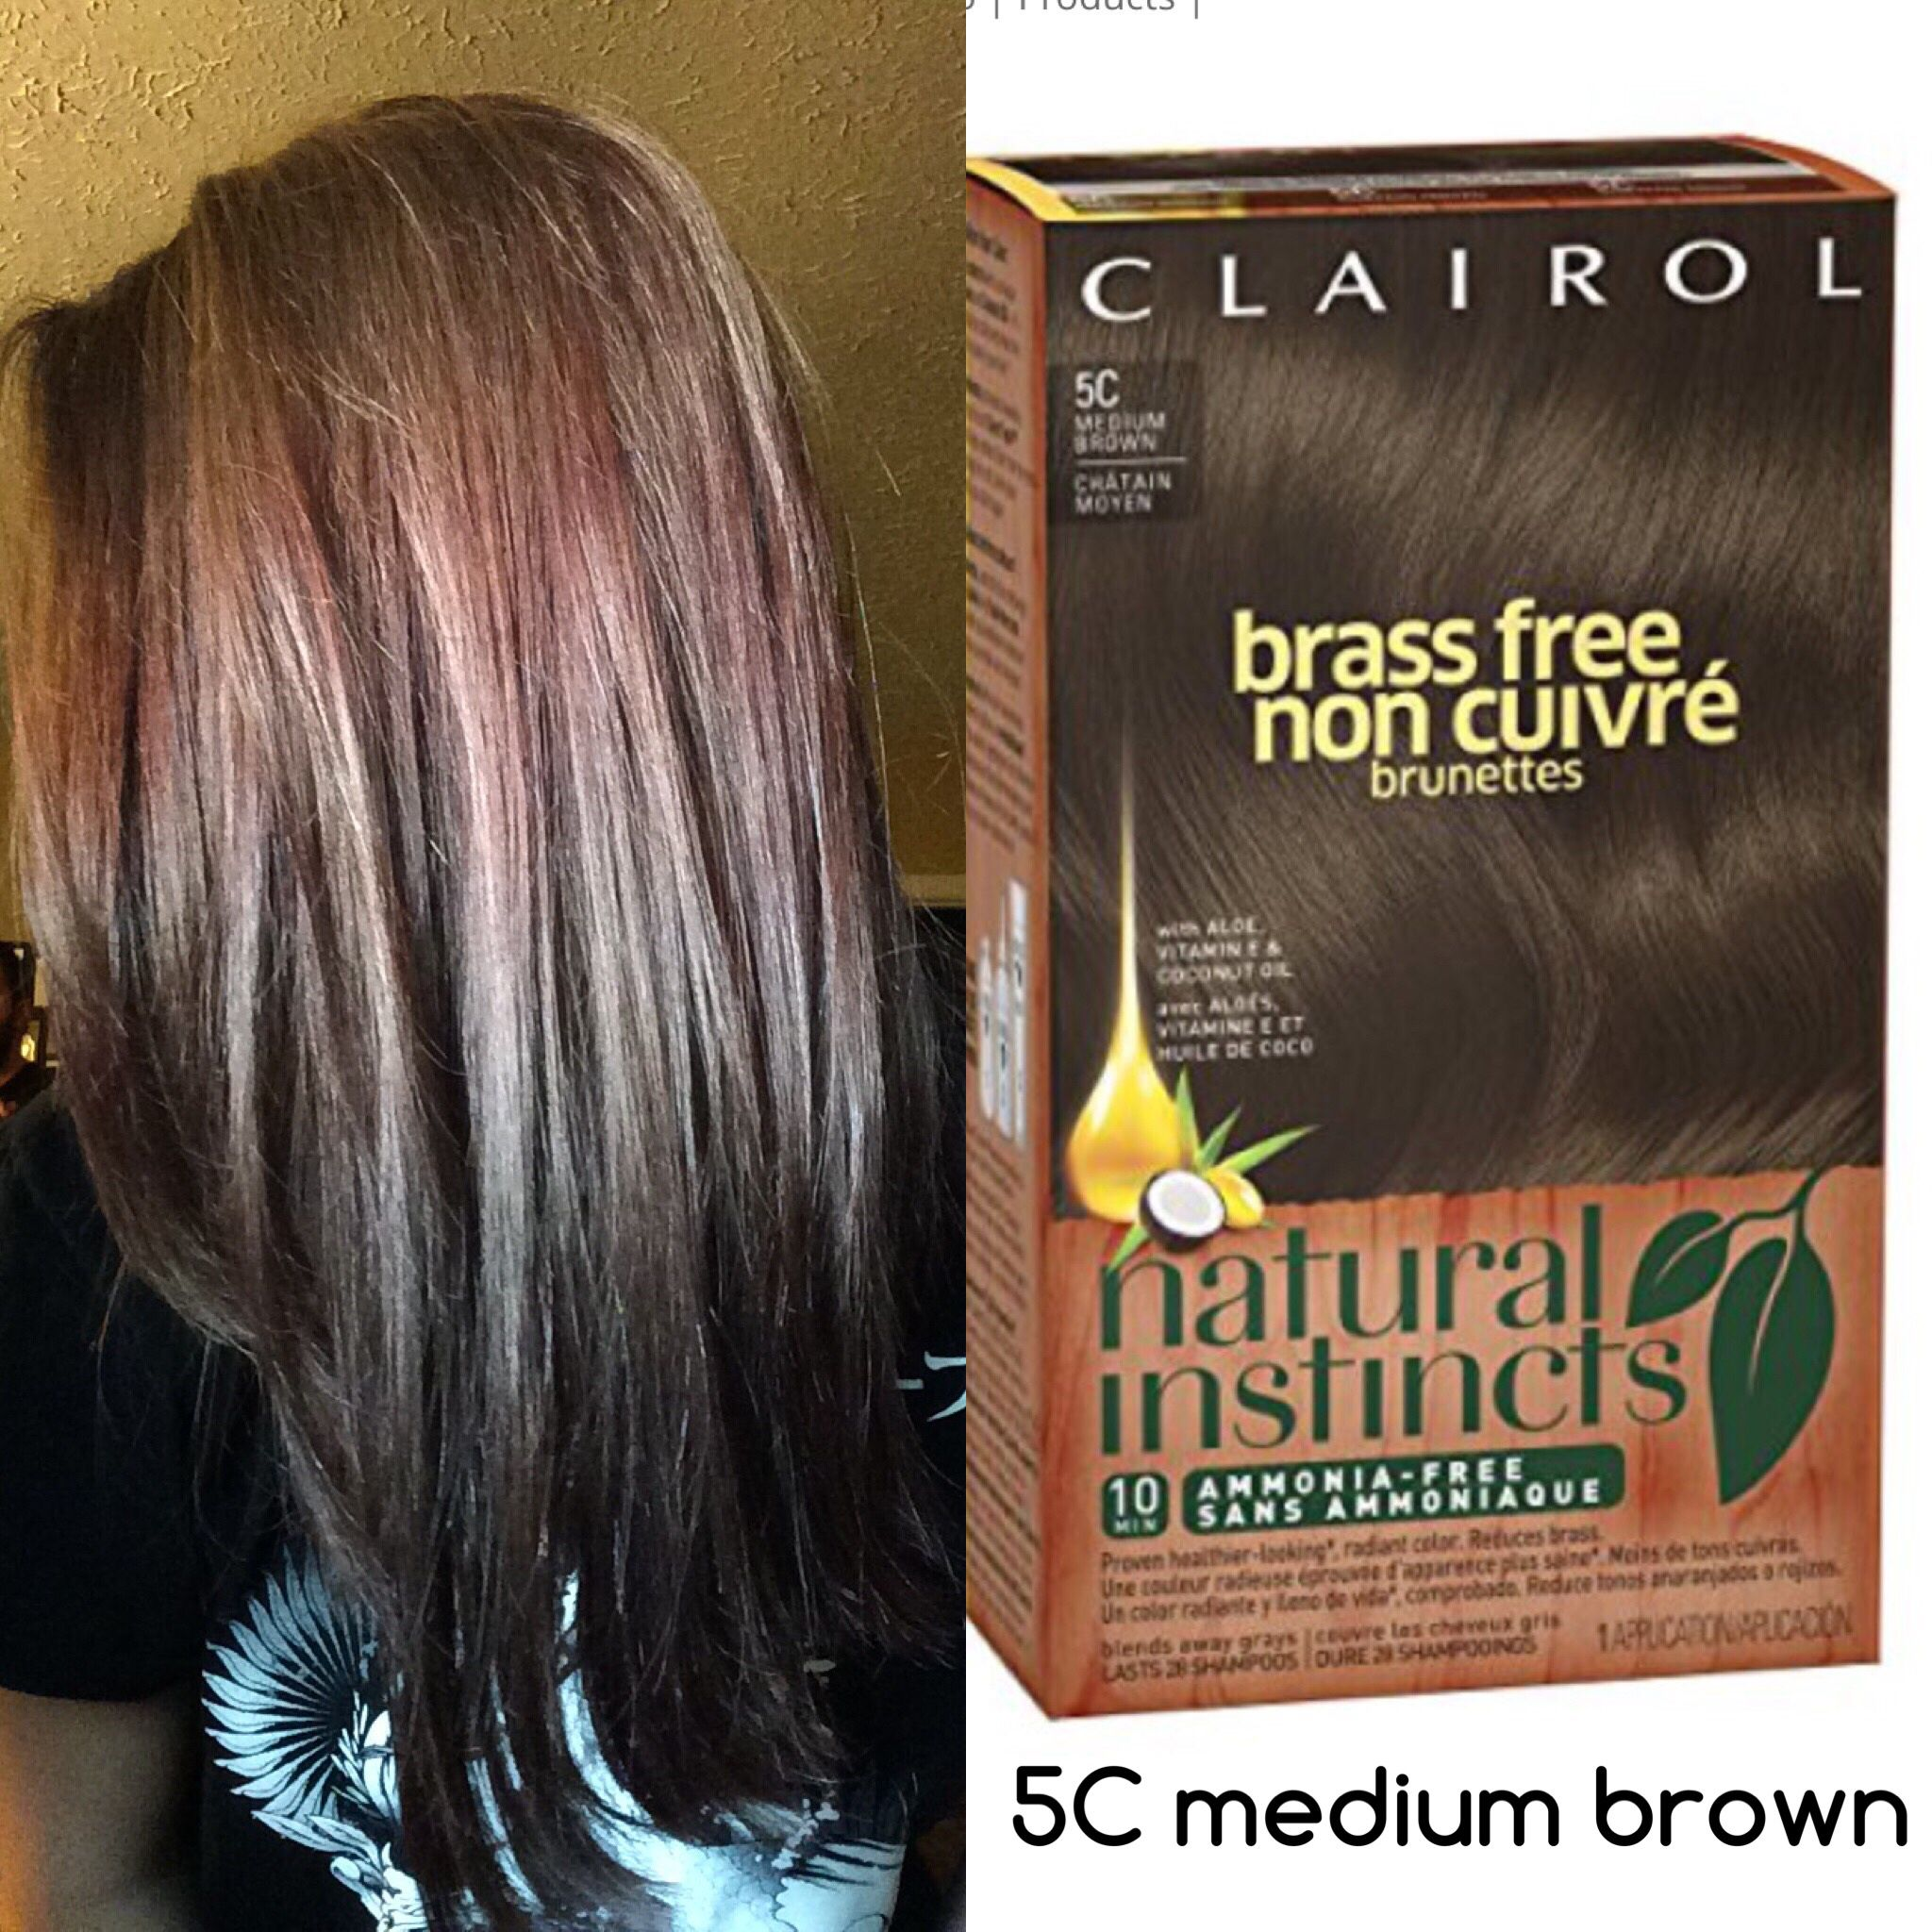 Clairol Natural Instincts 5c Medium Brown Hair Color Drugstore